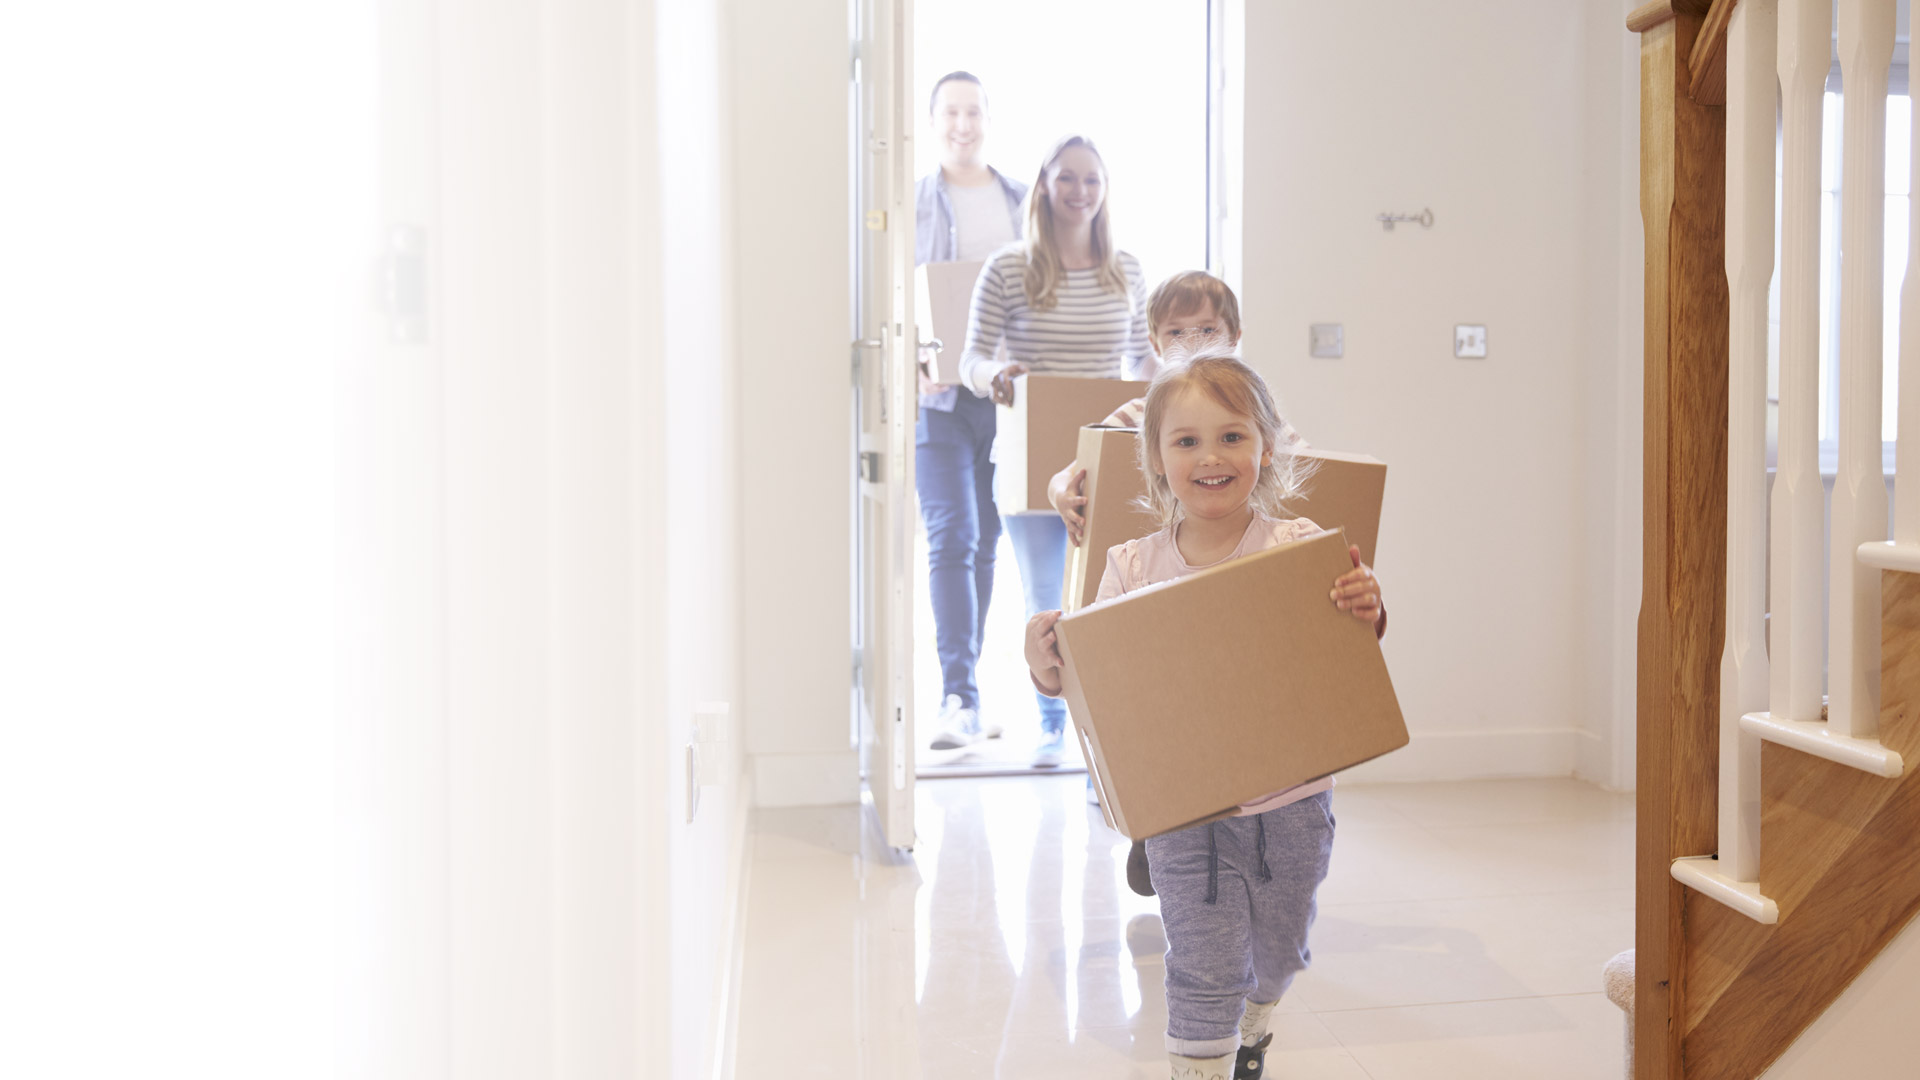 Slider of young family moving into their new home with their new mortgage